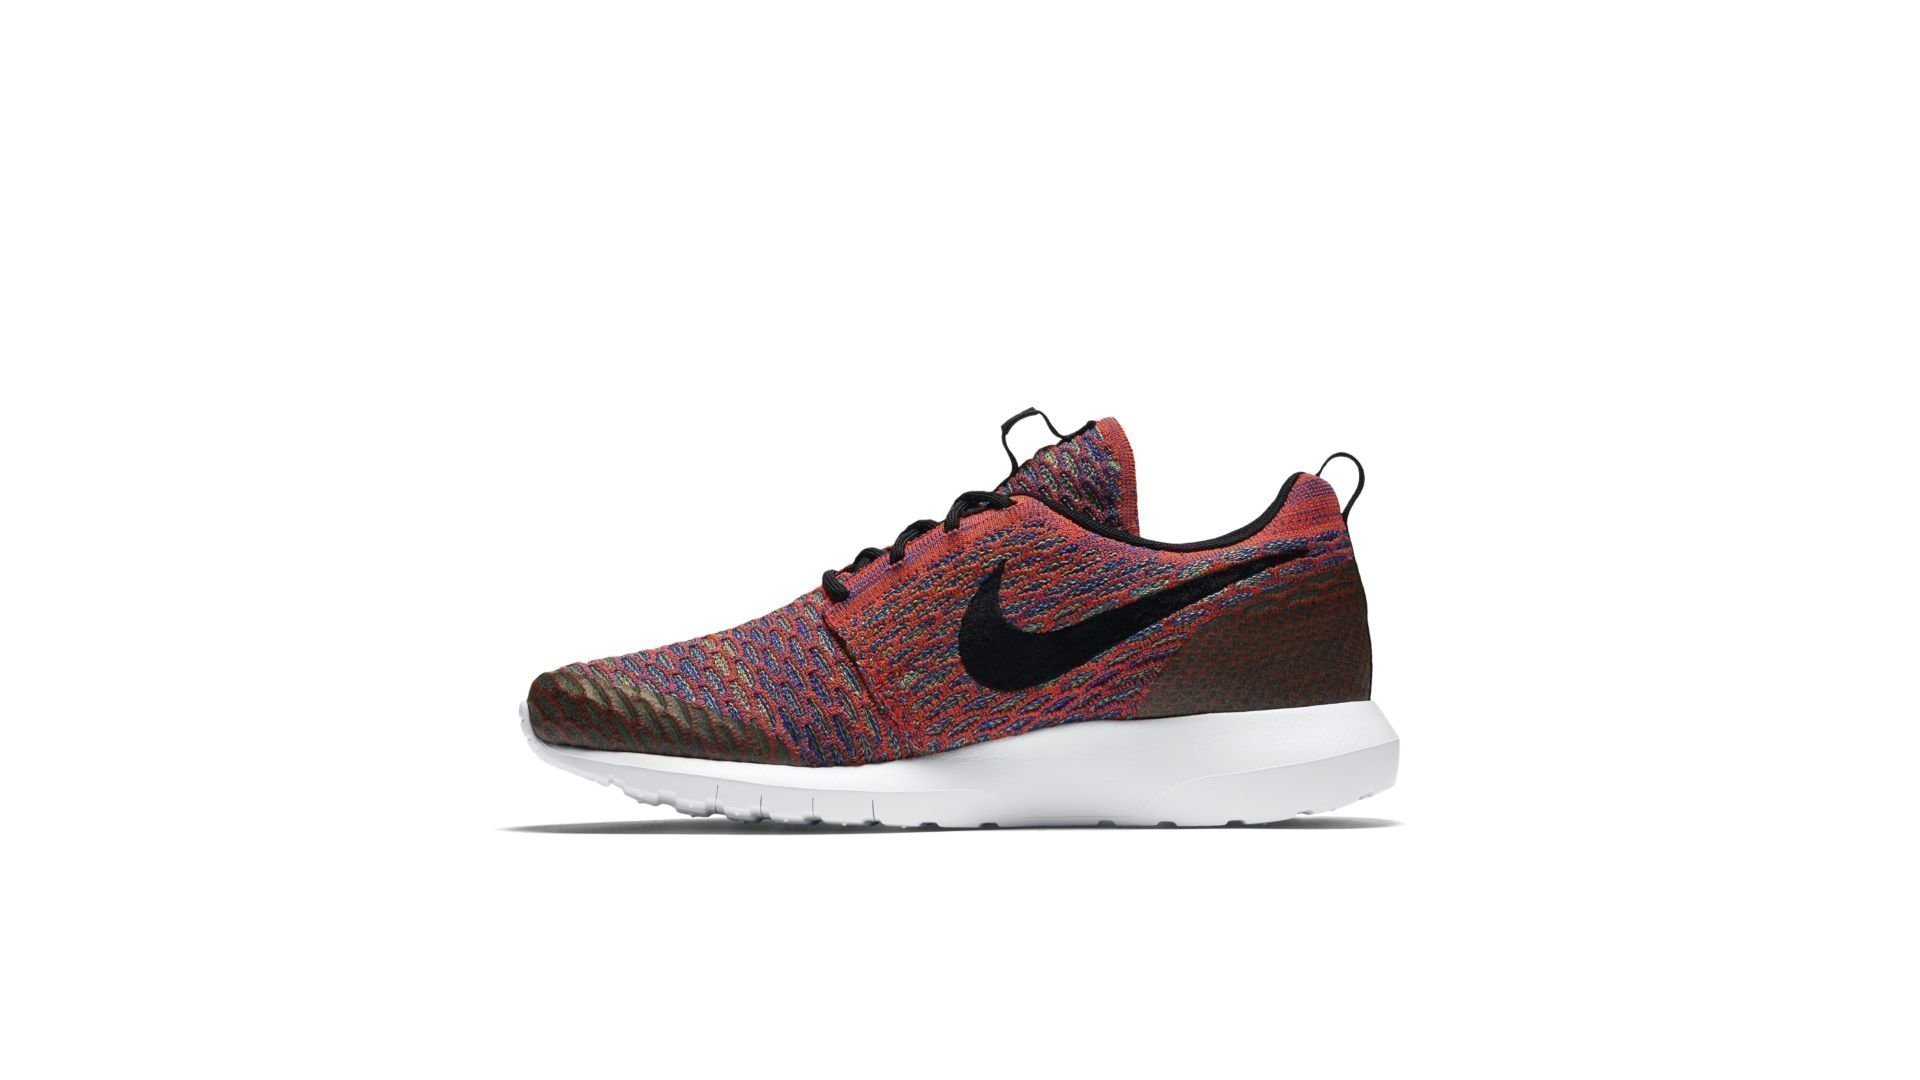 Nike Roshe NM Flyknit Bright Crimson Multi-Color (816531-600)